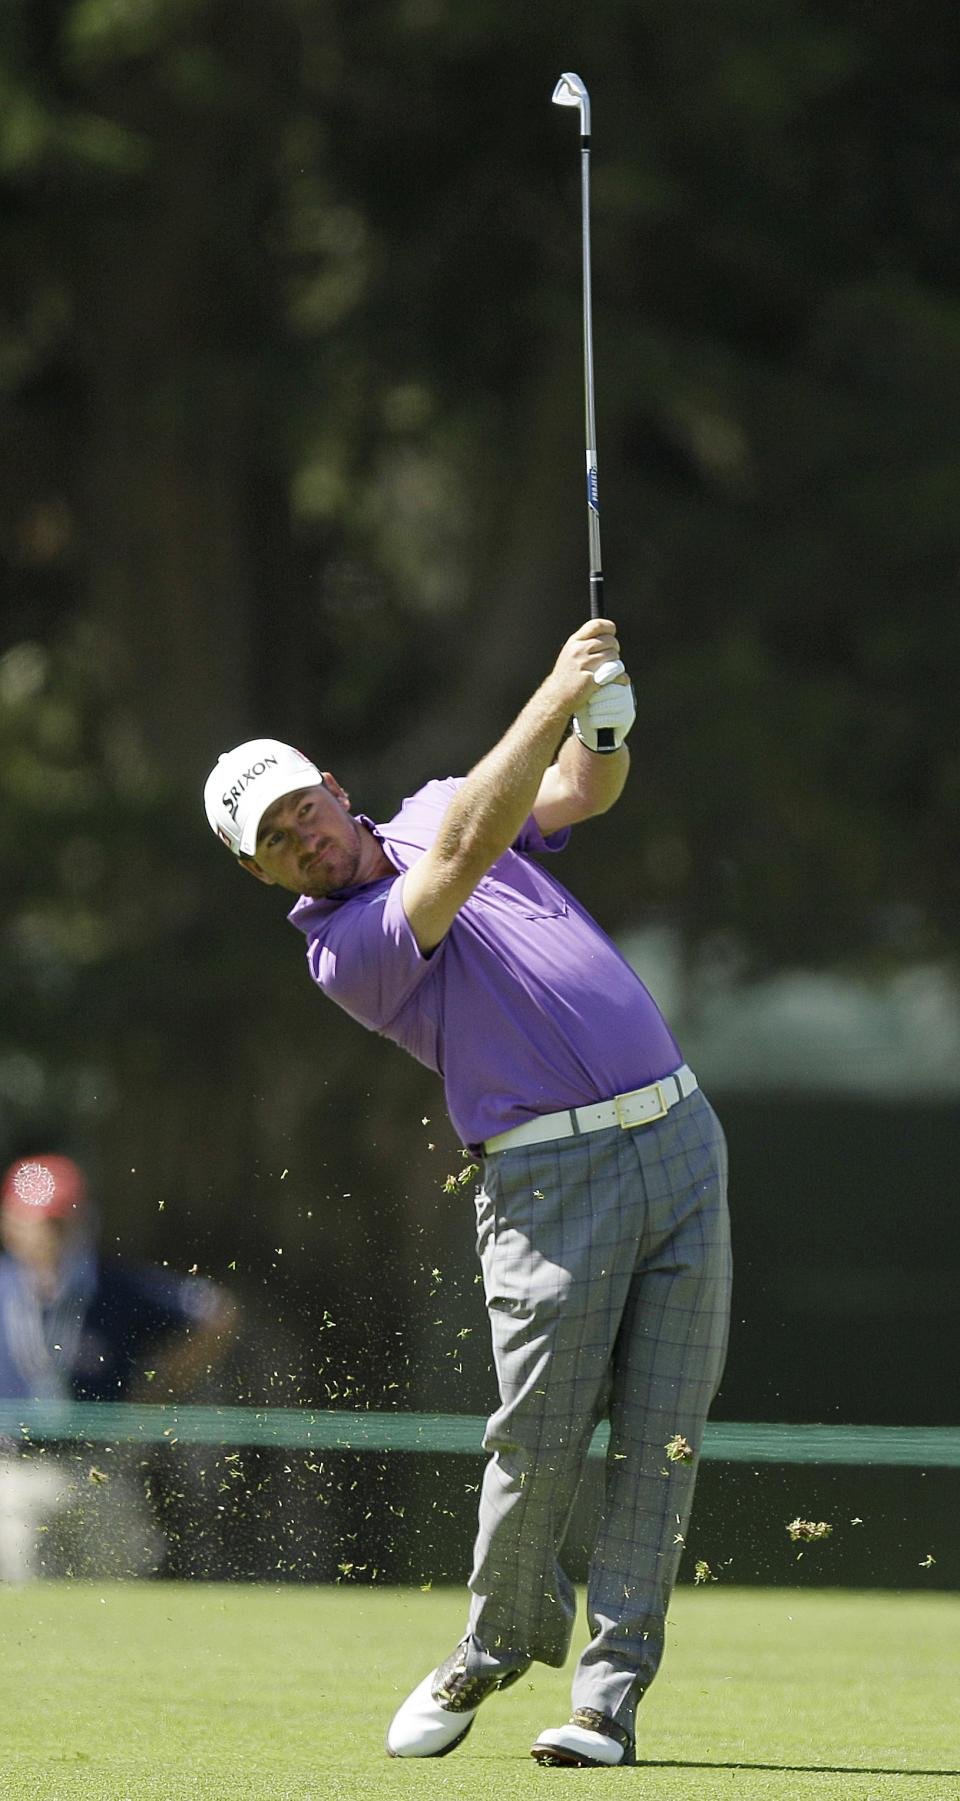 Graeme McDowell, of Northern Ireland, hits a shot on the fifth hole during the third round of the U.S. Open Championship golf tournament Saturday, June 16, 2012, at The Olympic Club in San Francisco. (AP Photo/Eric Risberg)